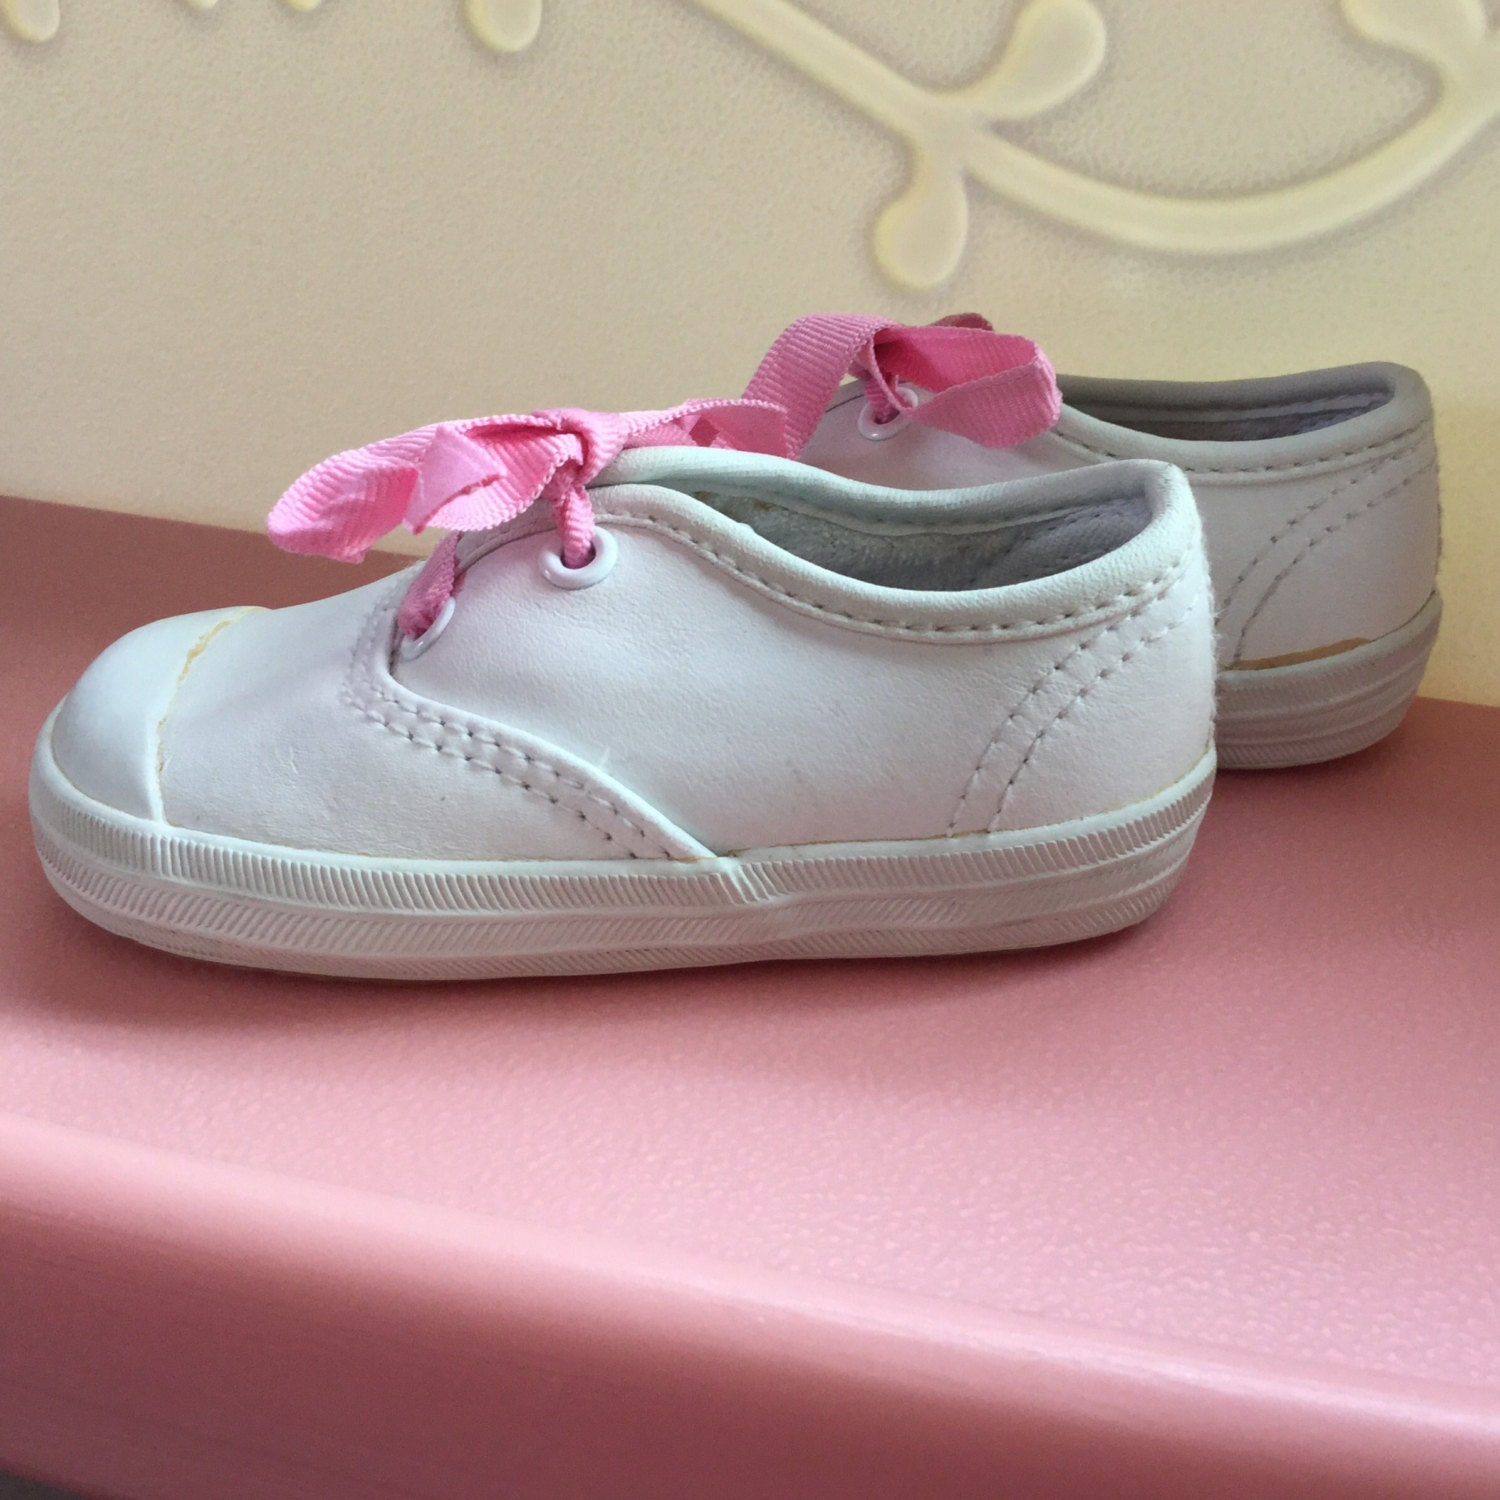 90s Baby Shoes Hanes KidsWear Size 3 White Leather Baby